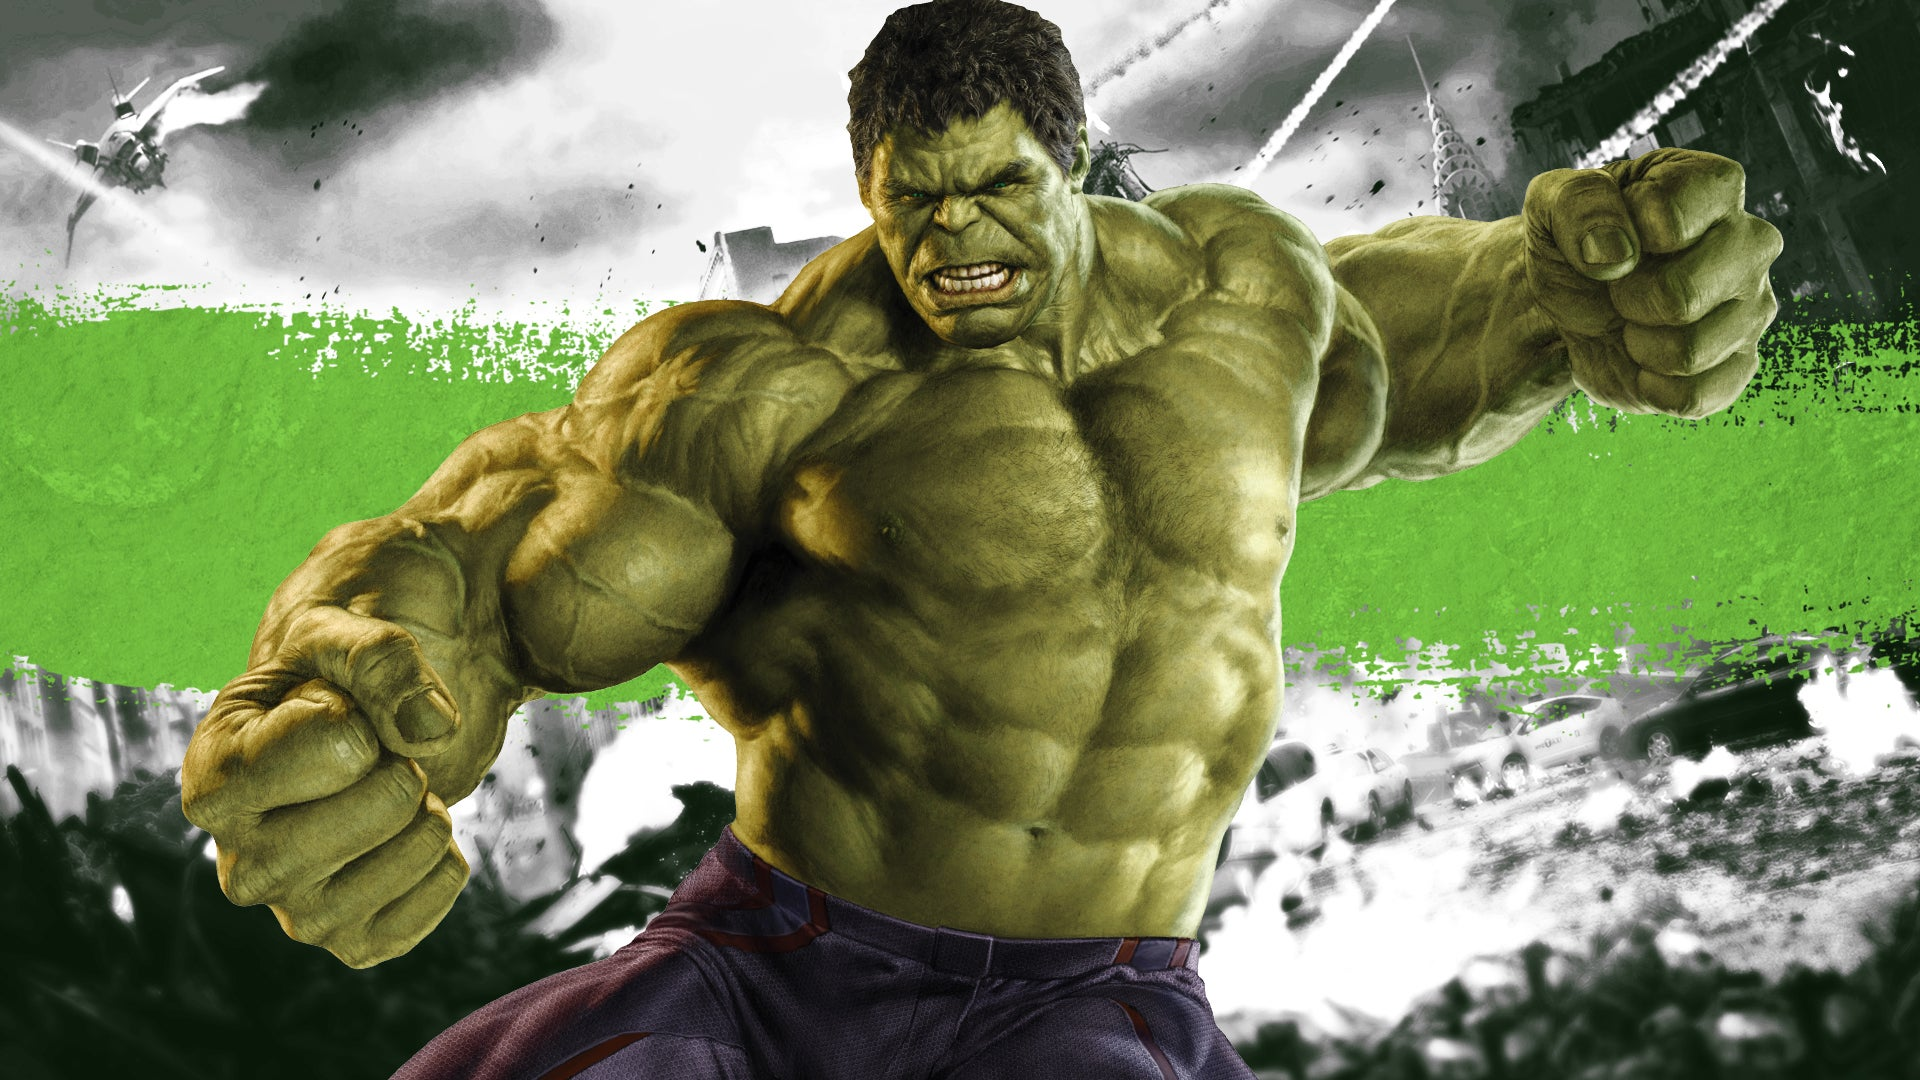 This is an image of Obsessed Images of Hulk